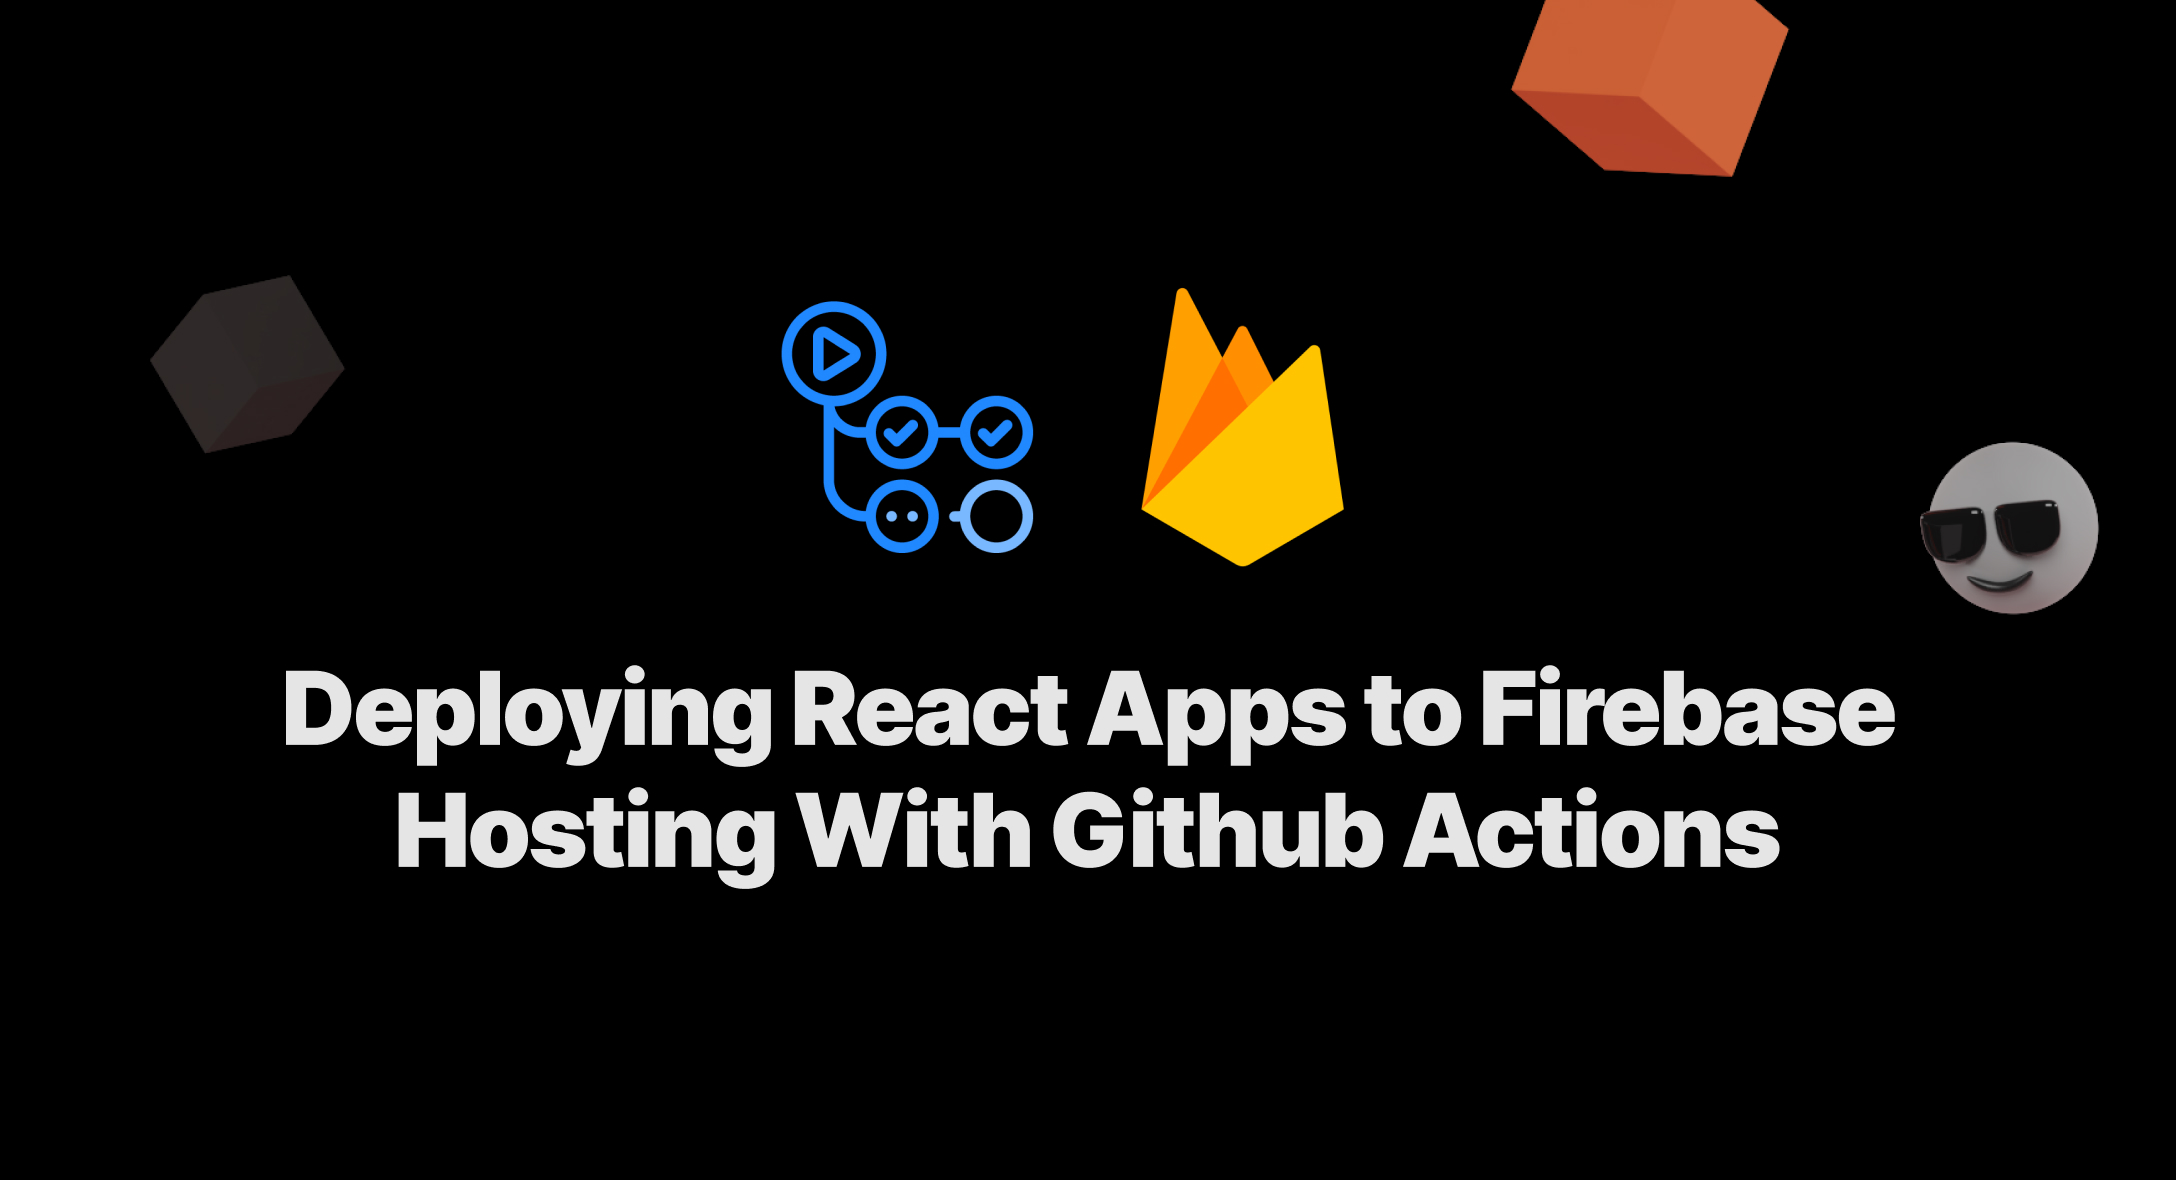 Deploying React Apps to Firebase Hosting With Github Actions